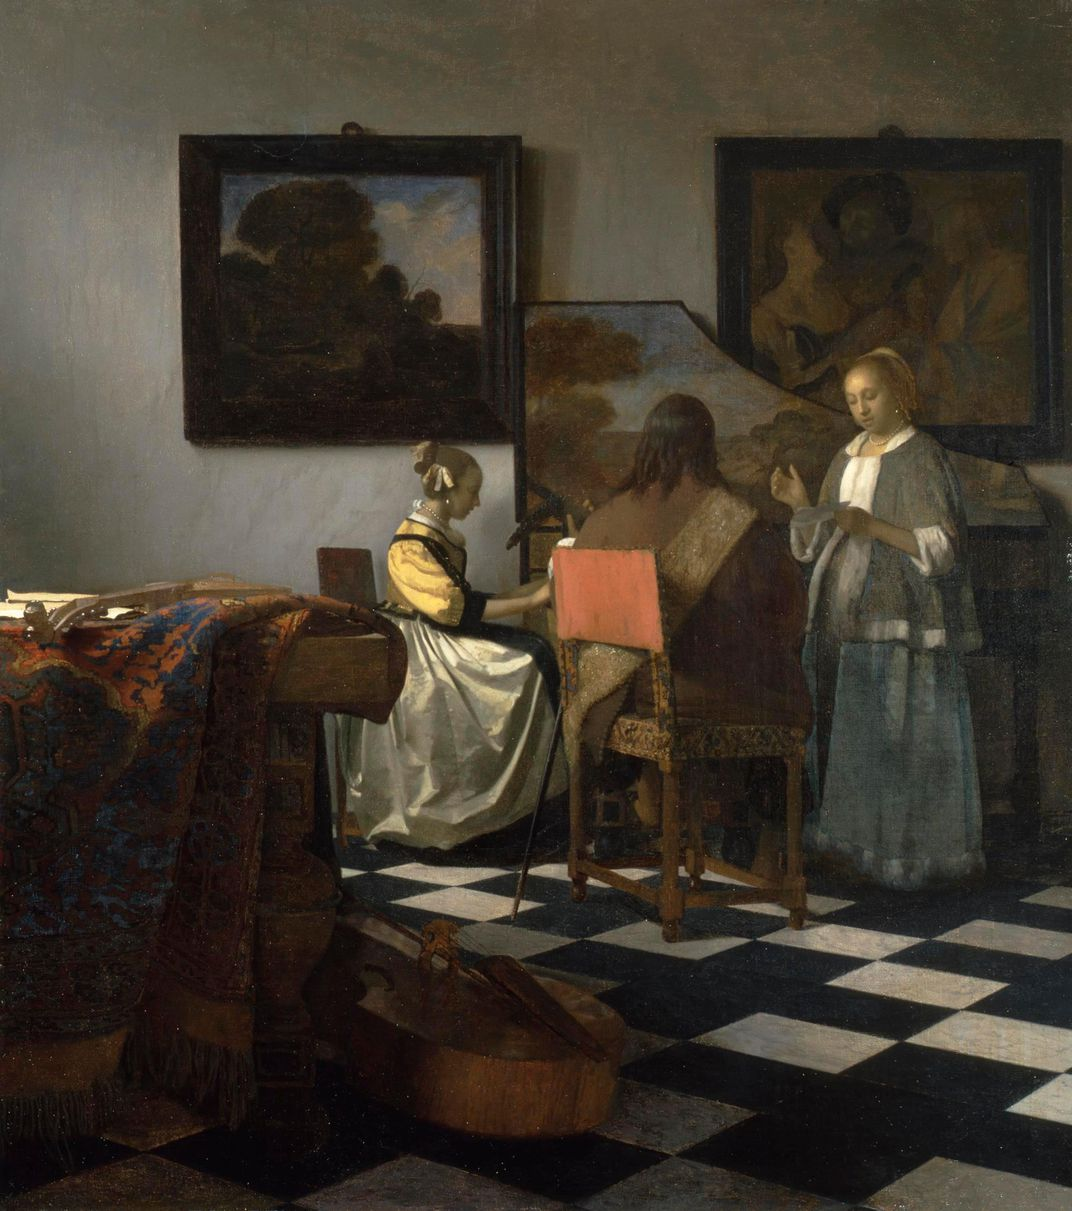 An interior domestic scene of two women and a man performing music